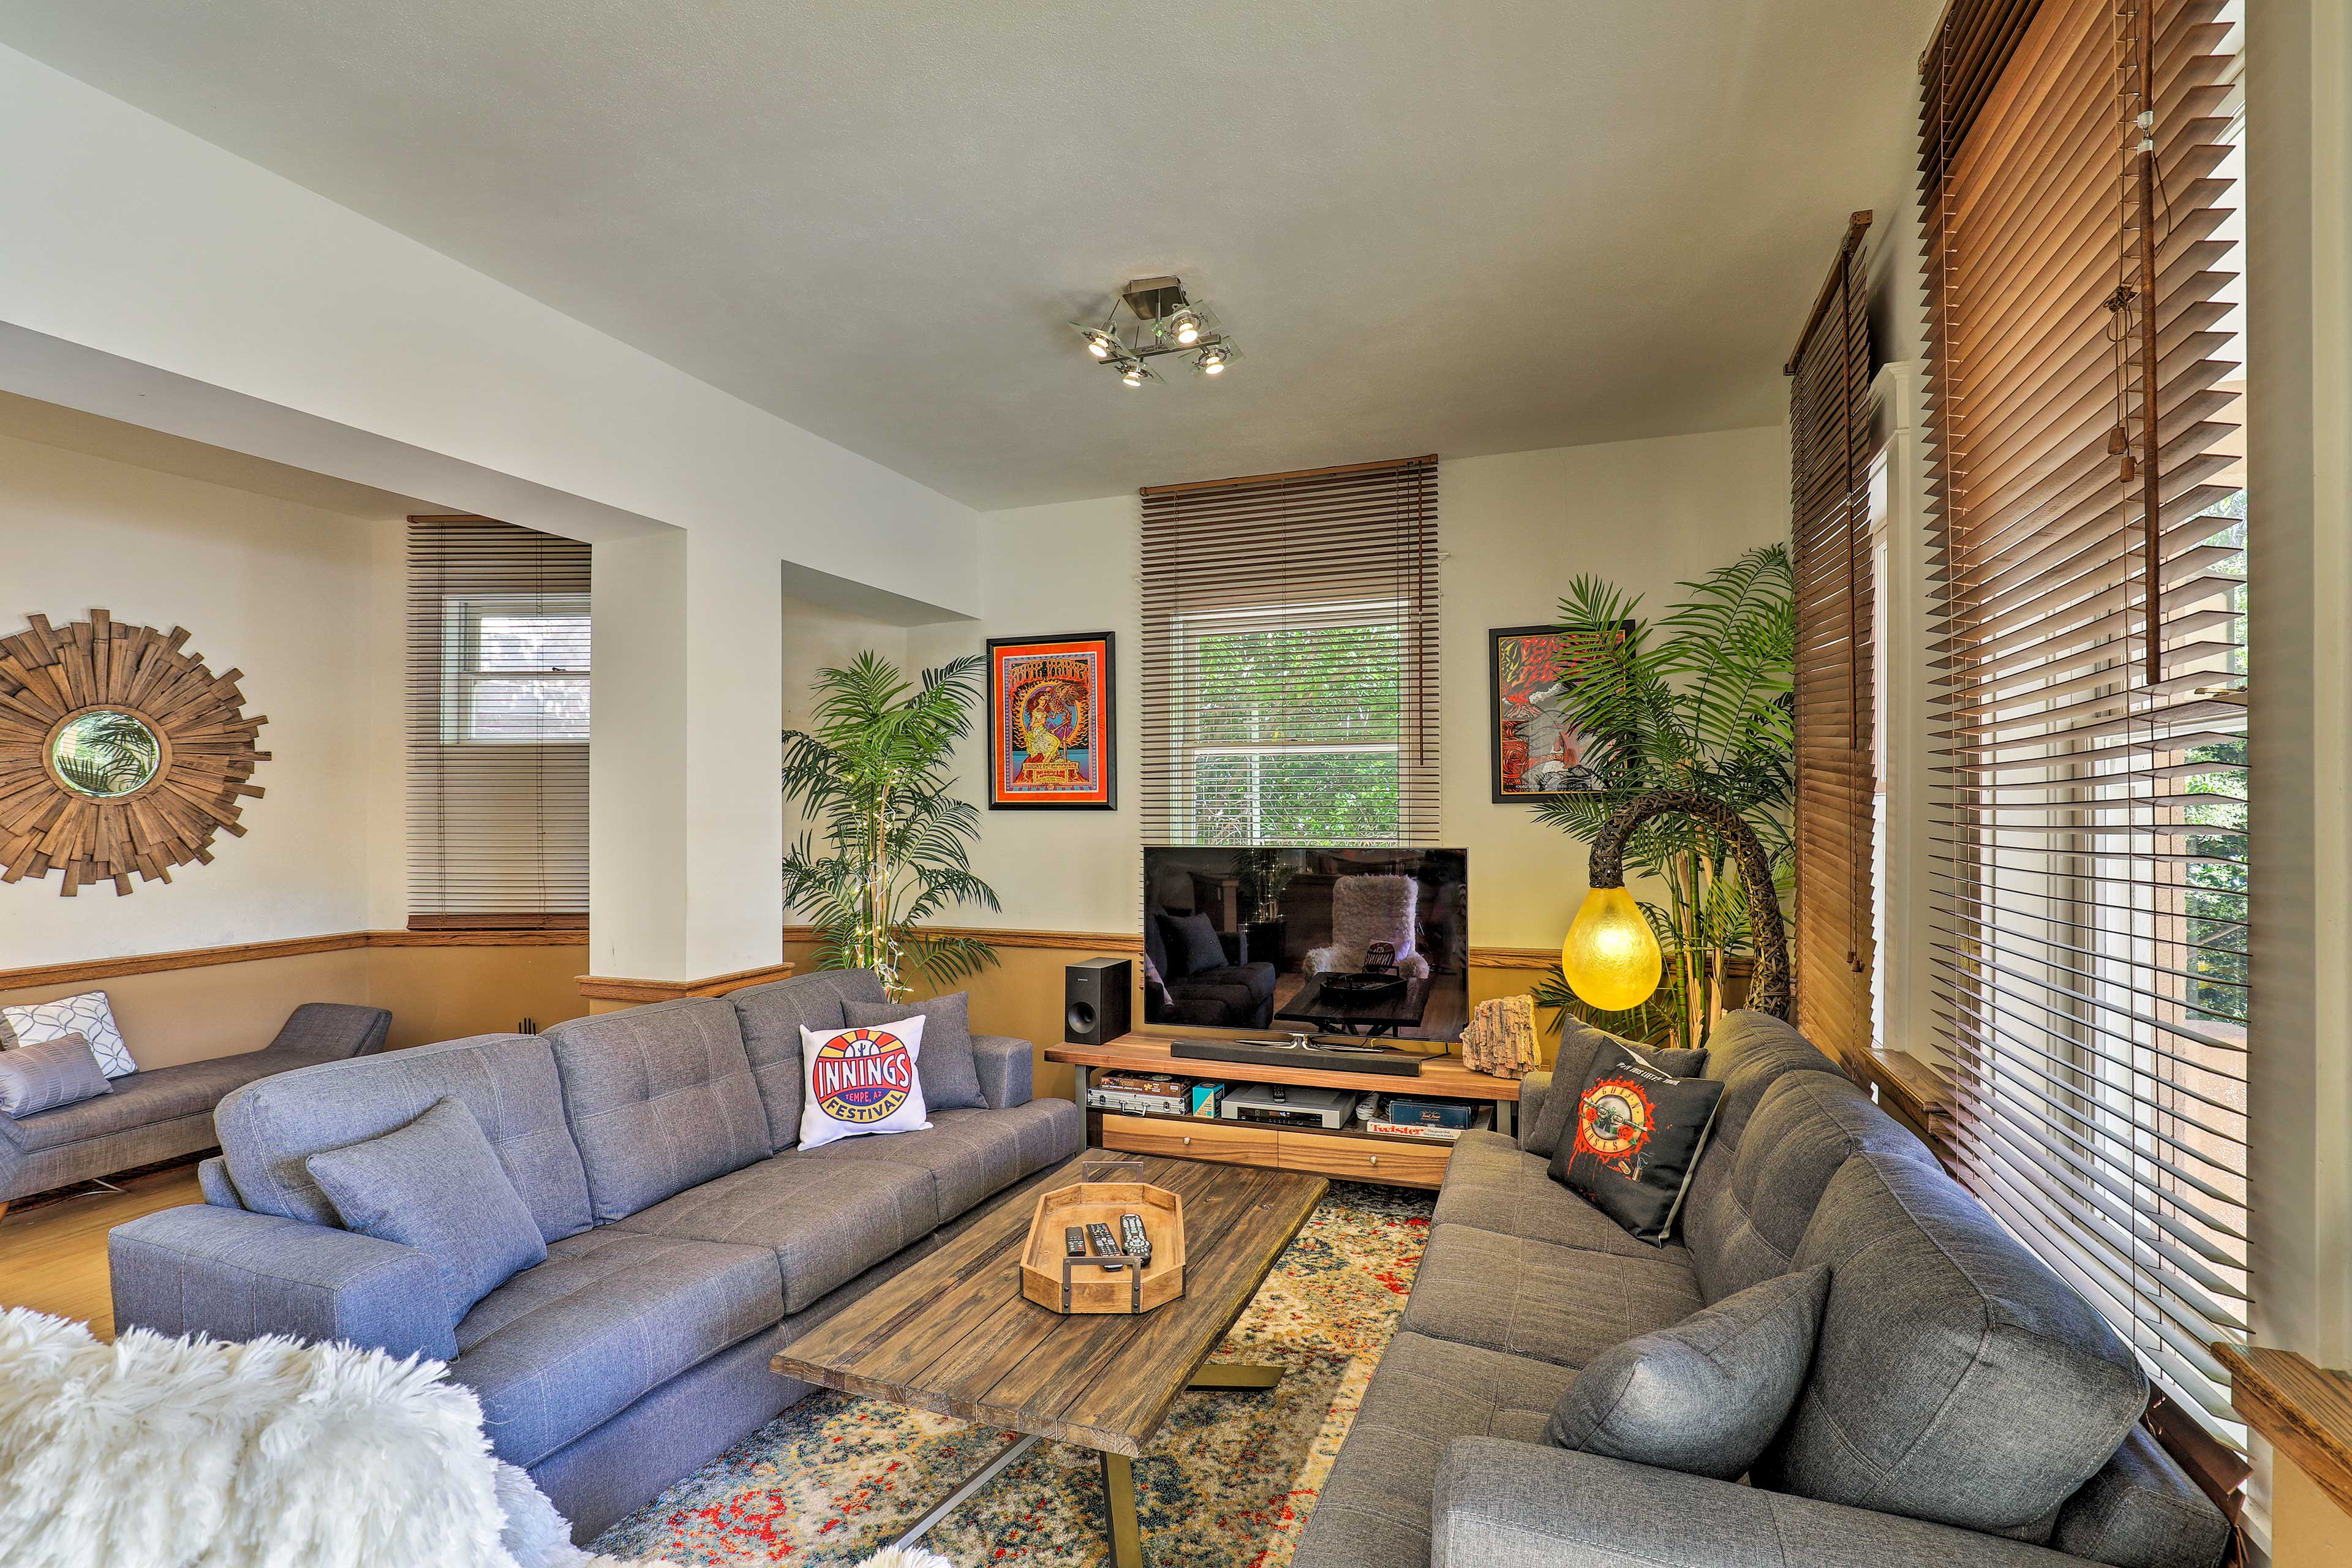 Relax on the sofa and watch a show on the flat-screen TV.